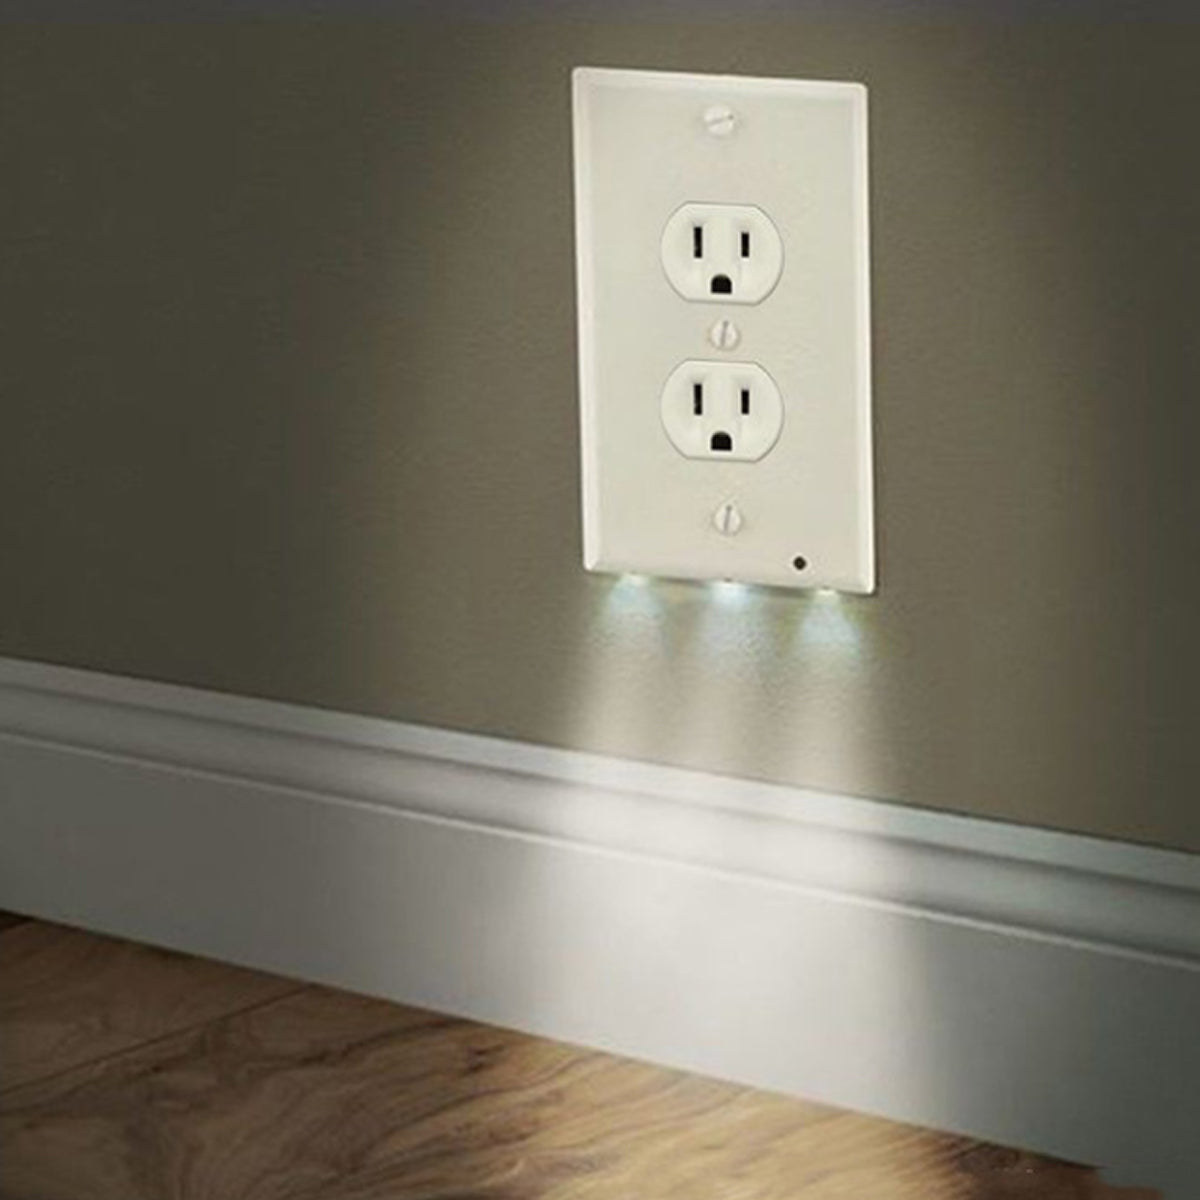 shopify-Path Lighter Auto Motion Wall Plate LED Light  2- PACK-2